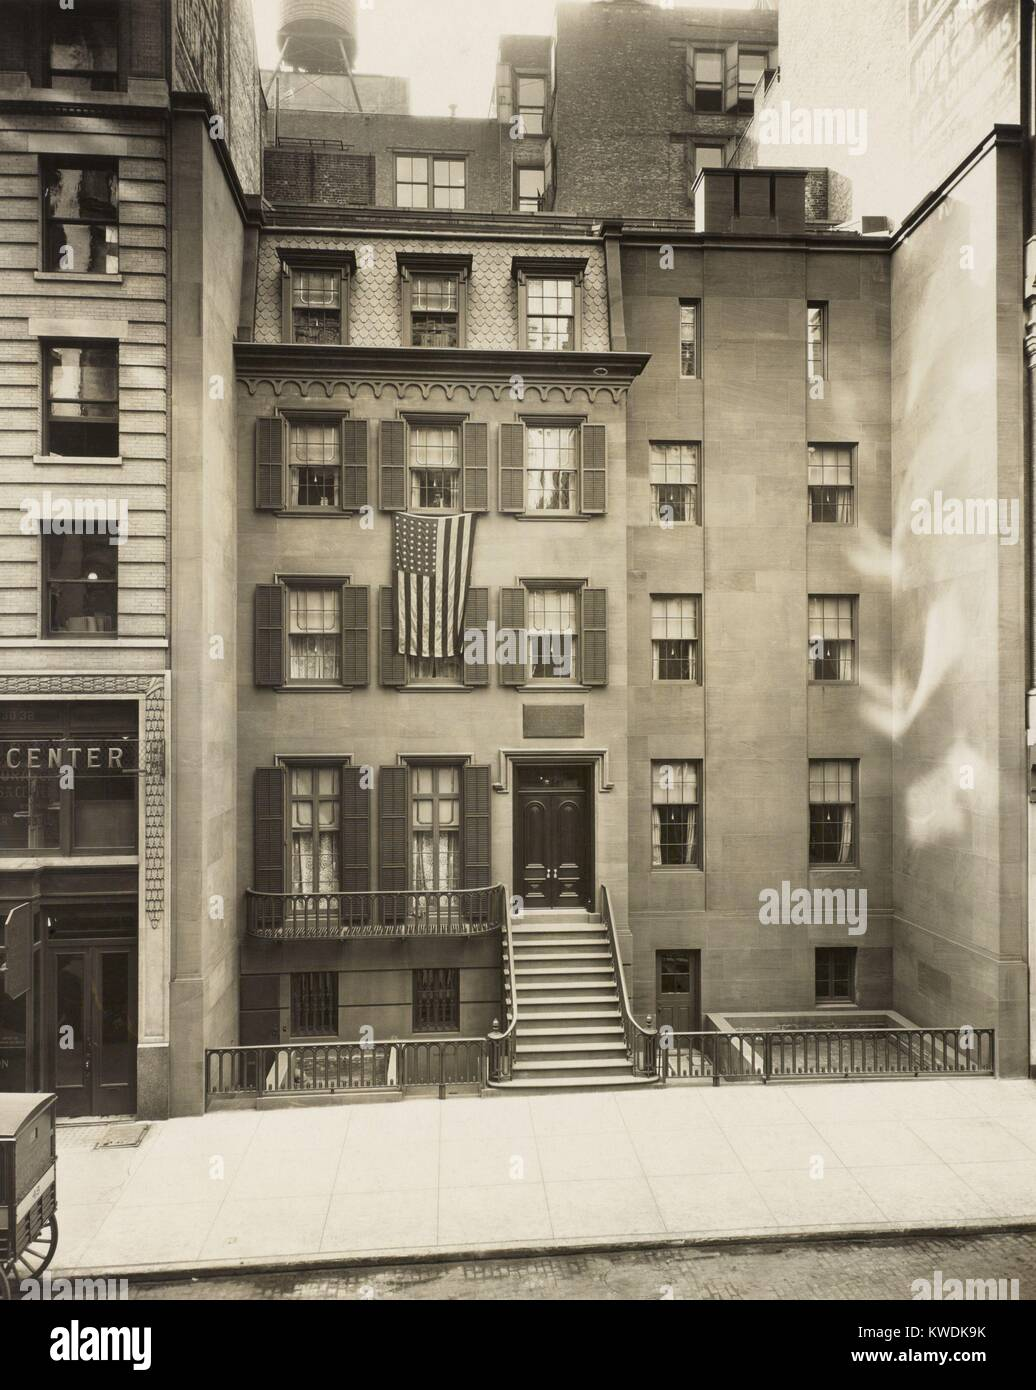 President Theodore Roosevelts was born and raised in a townhouse at 28 E. 20th St., New York City. Photo of the - Stock Image